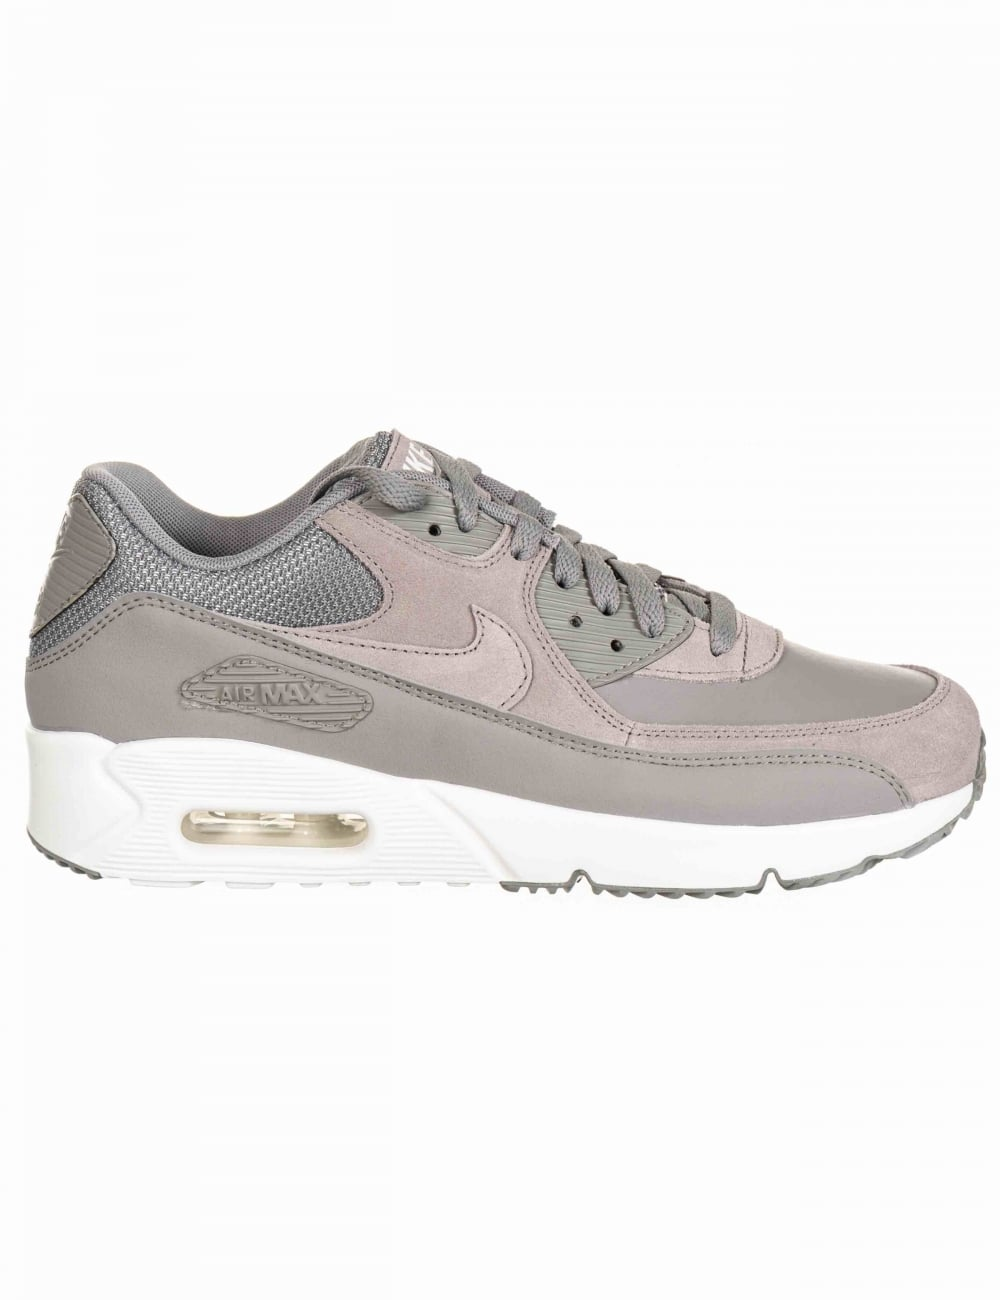 sports shoes 3ec85 af992 Air Max 90 Ultra 2.0 Trainers - Dust/Dust